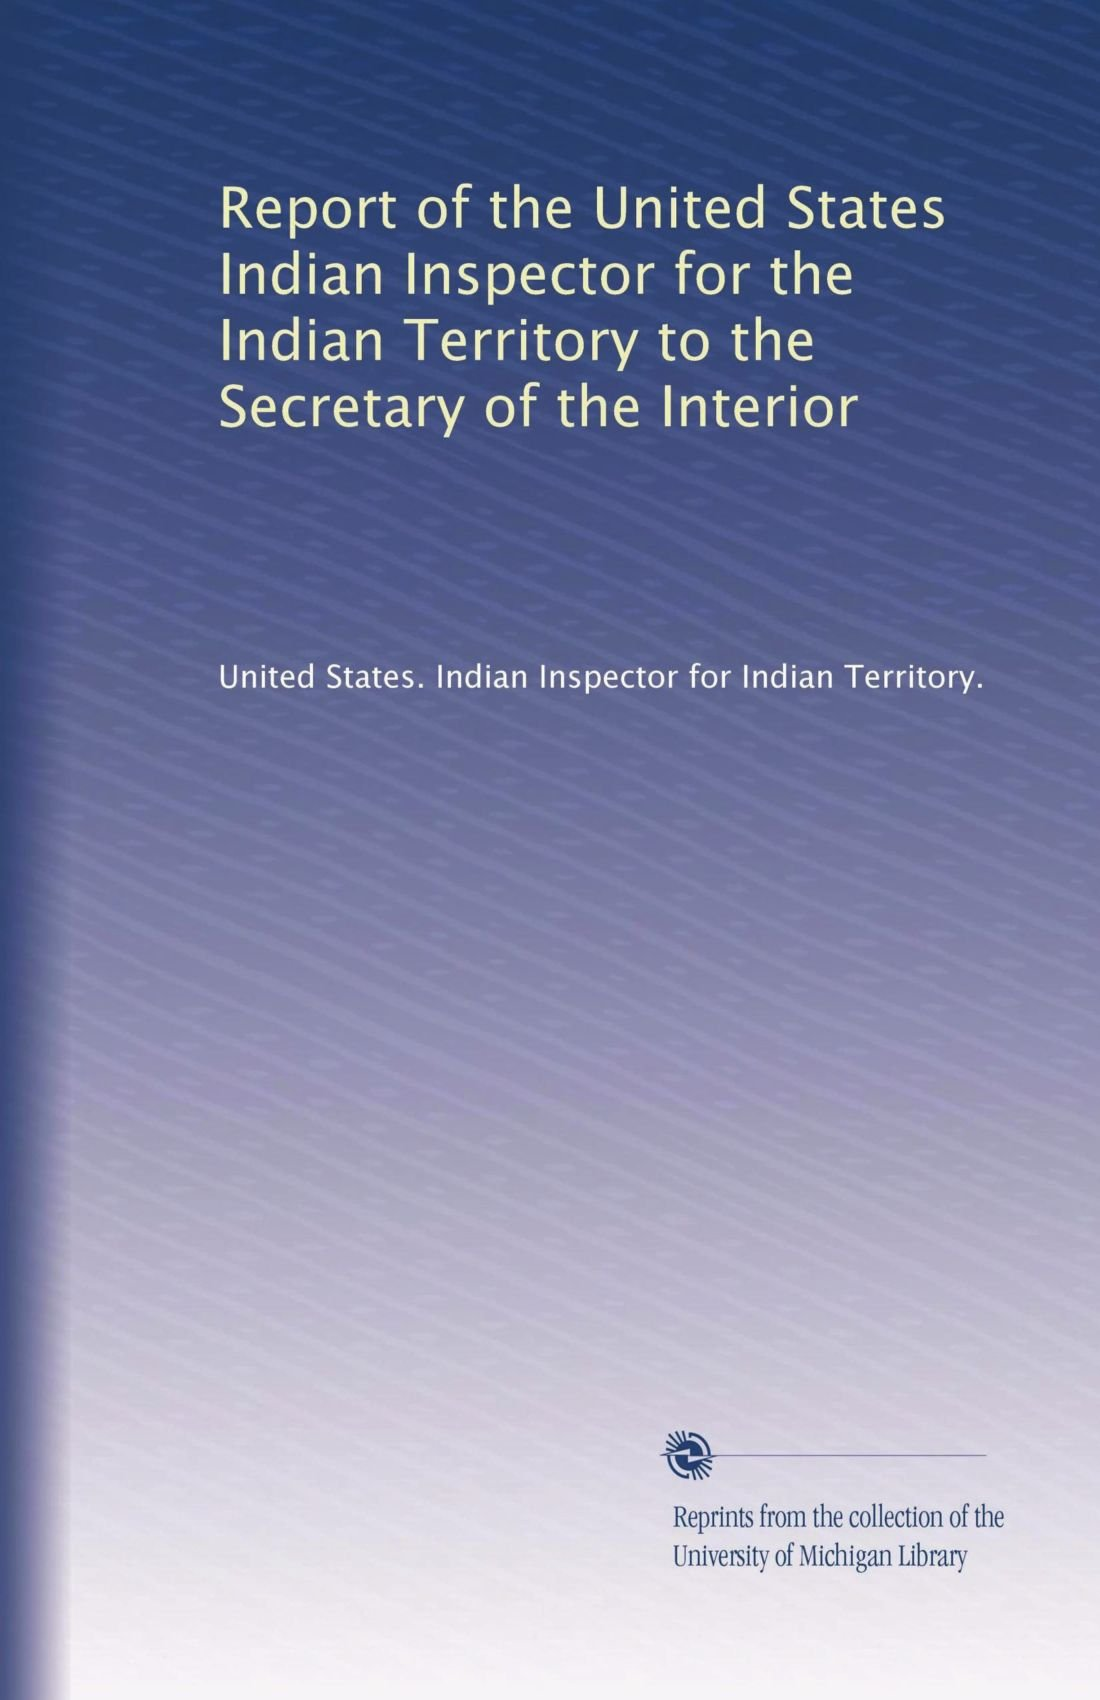 Report of the United States Indian Inspector for the Indian